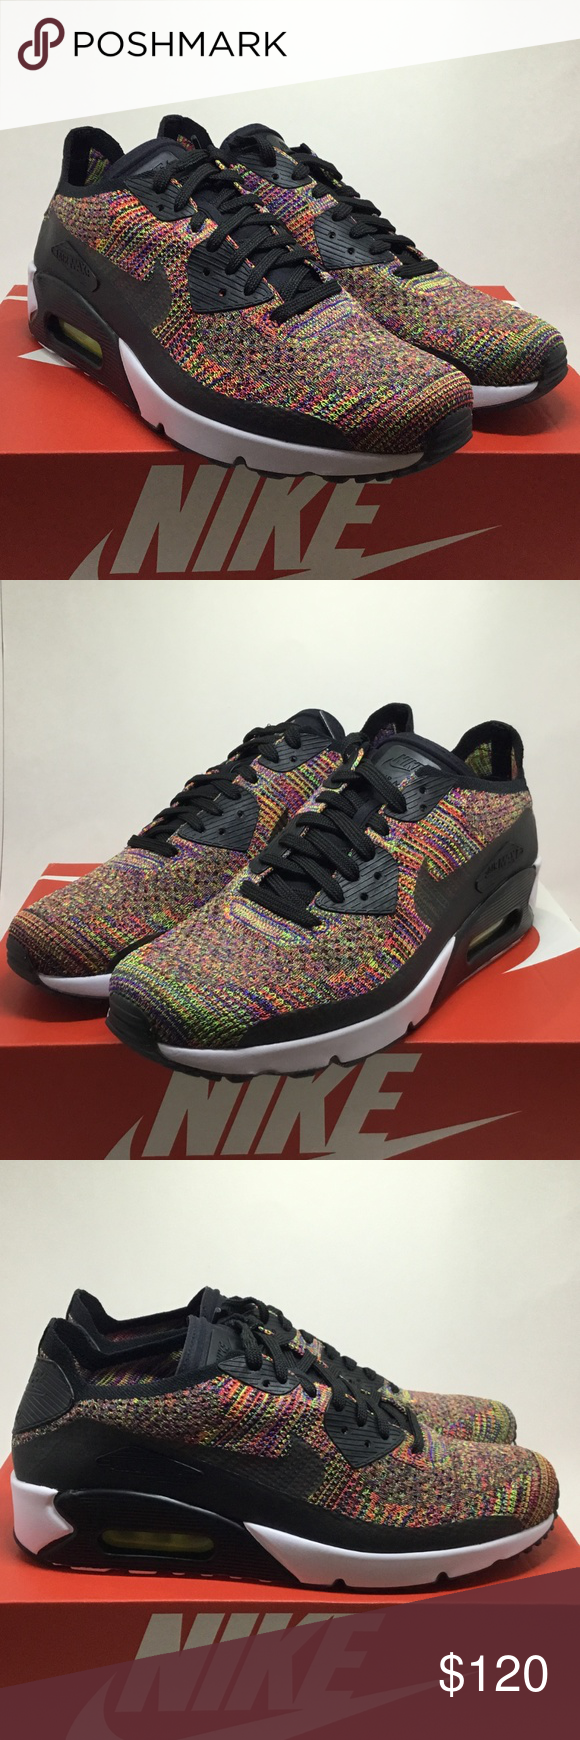 Nike Air Max 90 Ultra Flyknit Multicolor 2.0 875943 002